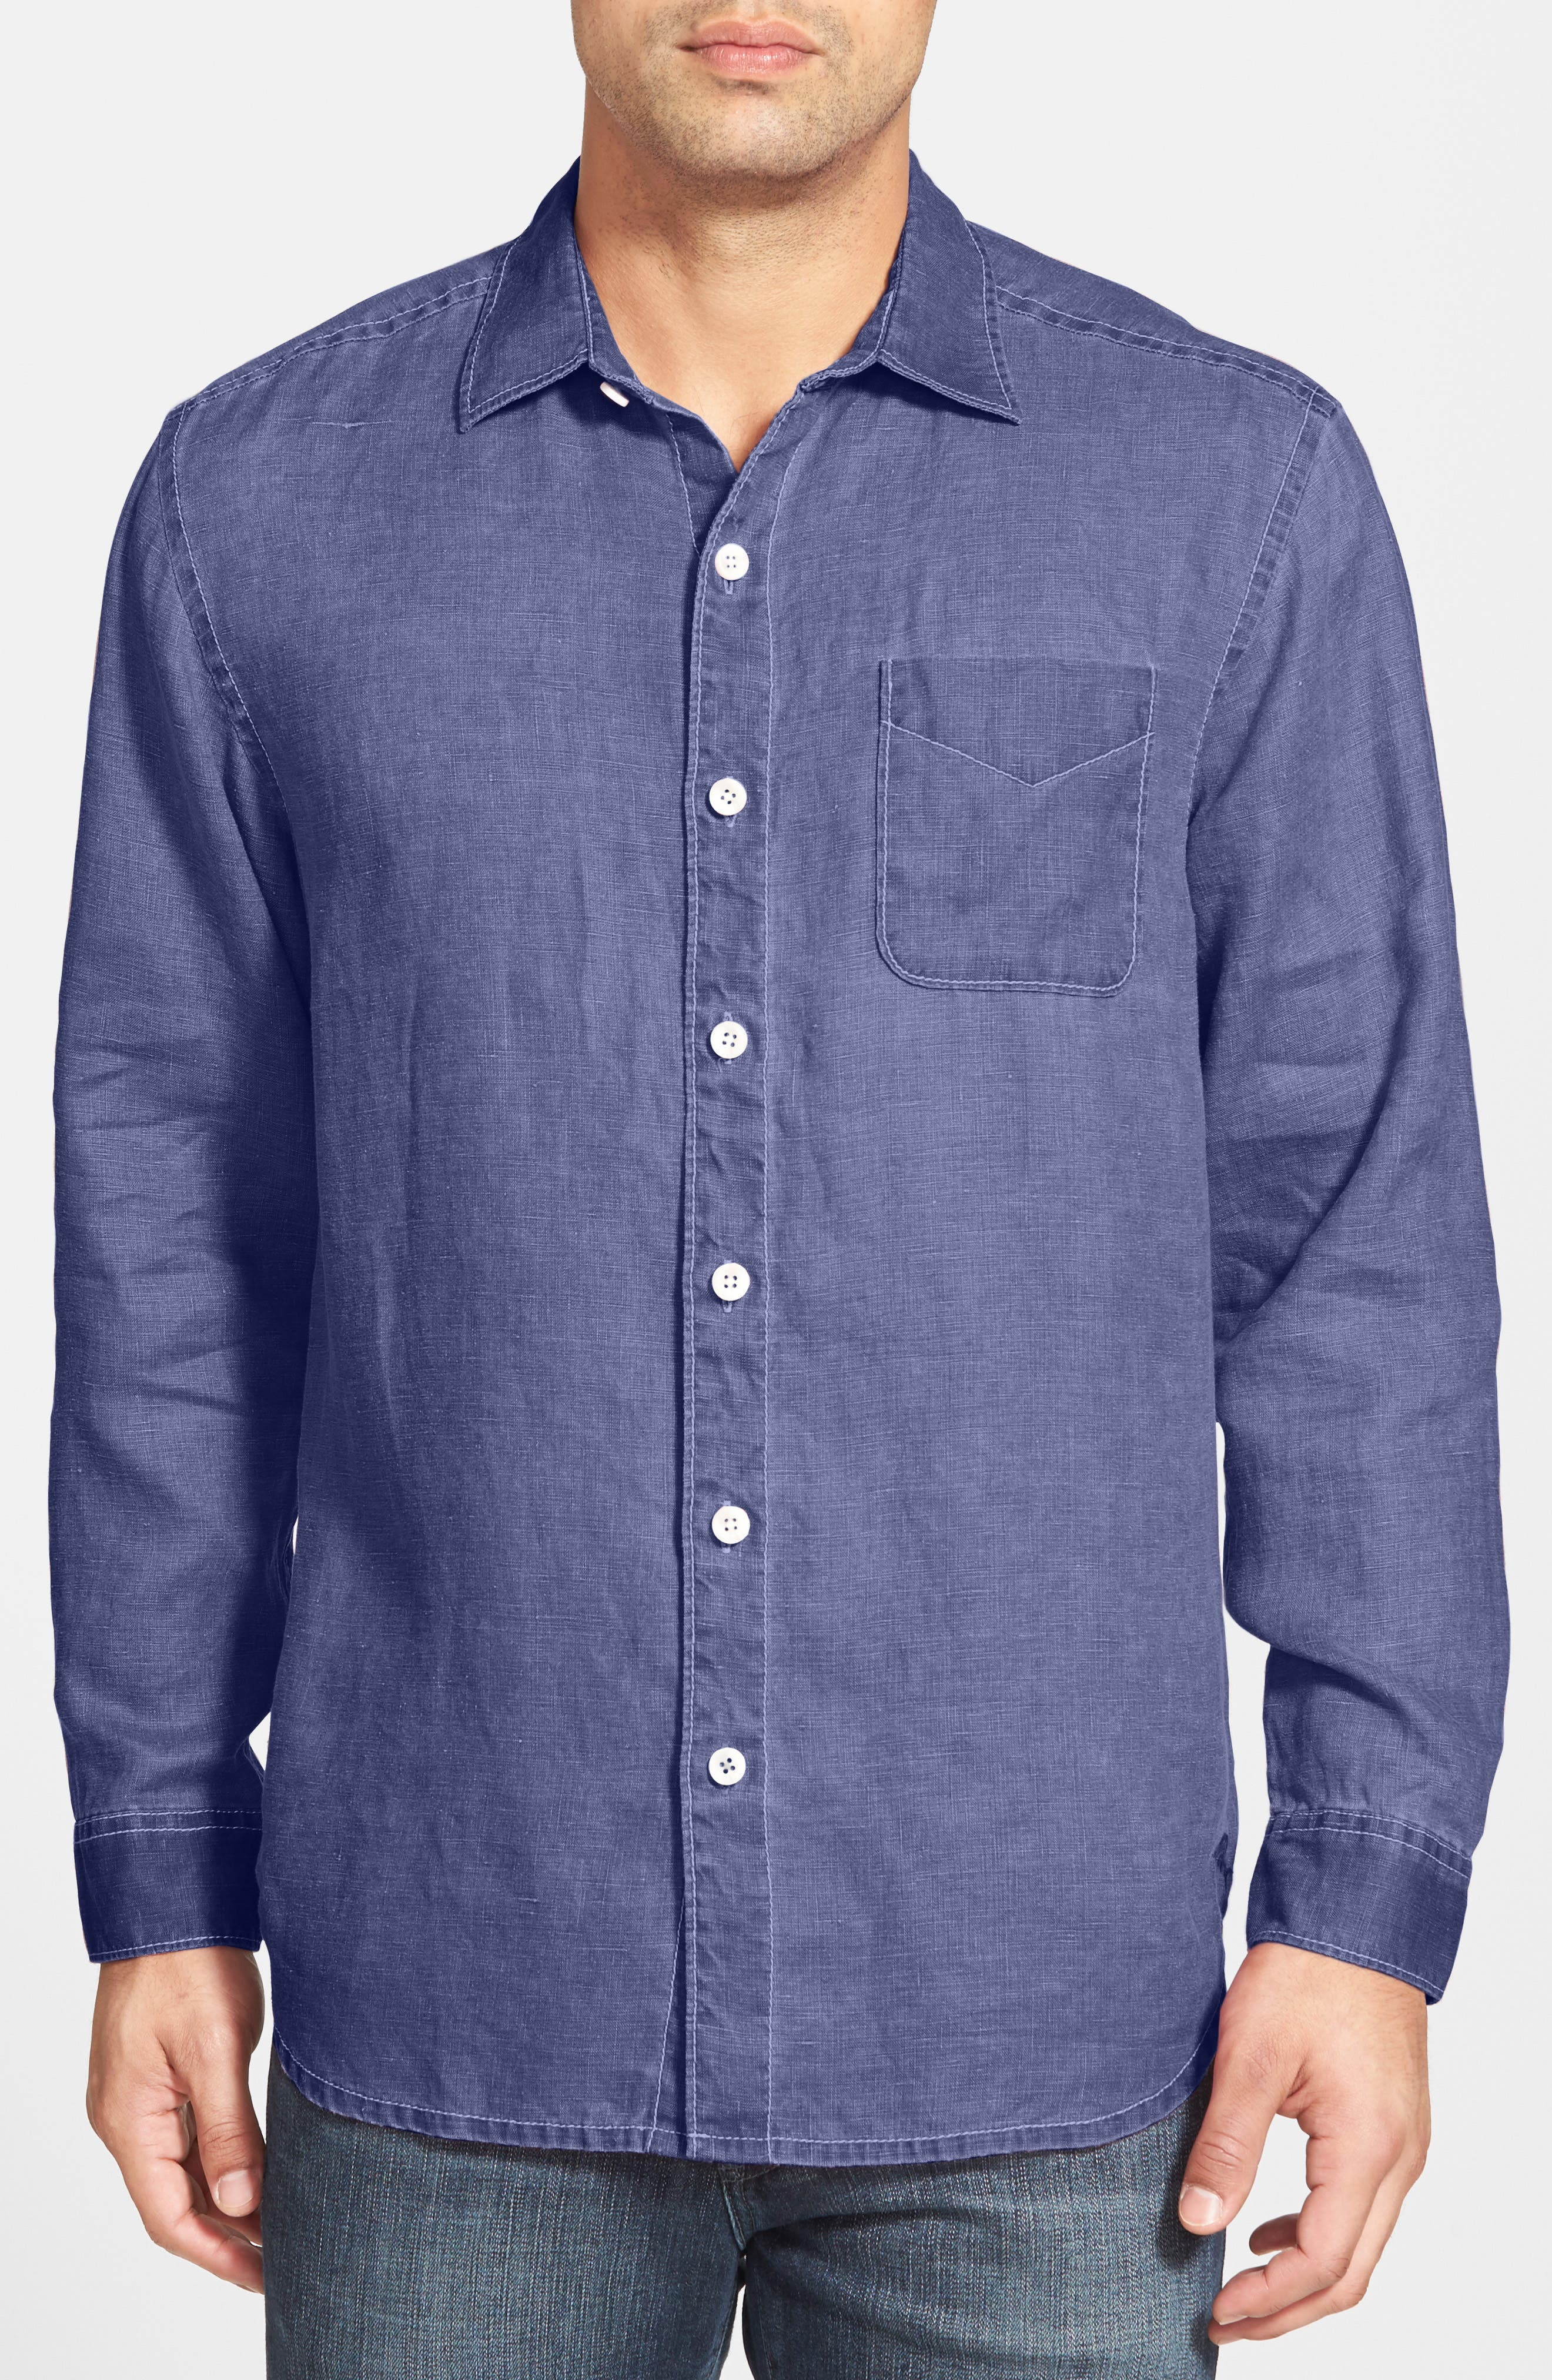 Tommy Bahama 'Sea Glass Breezer' Original Fit Linen Shirt